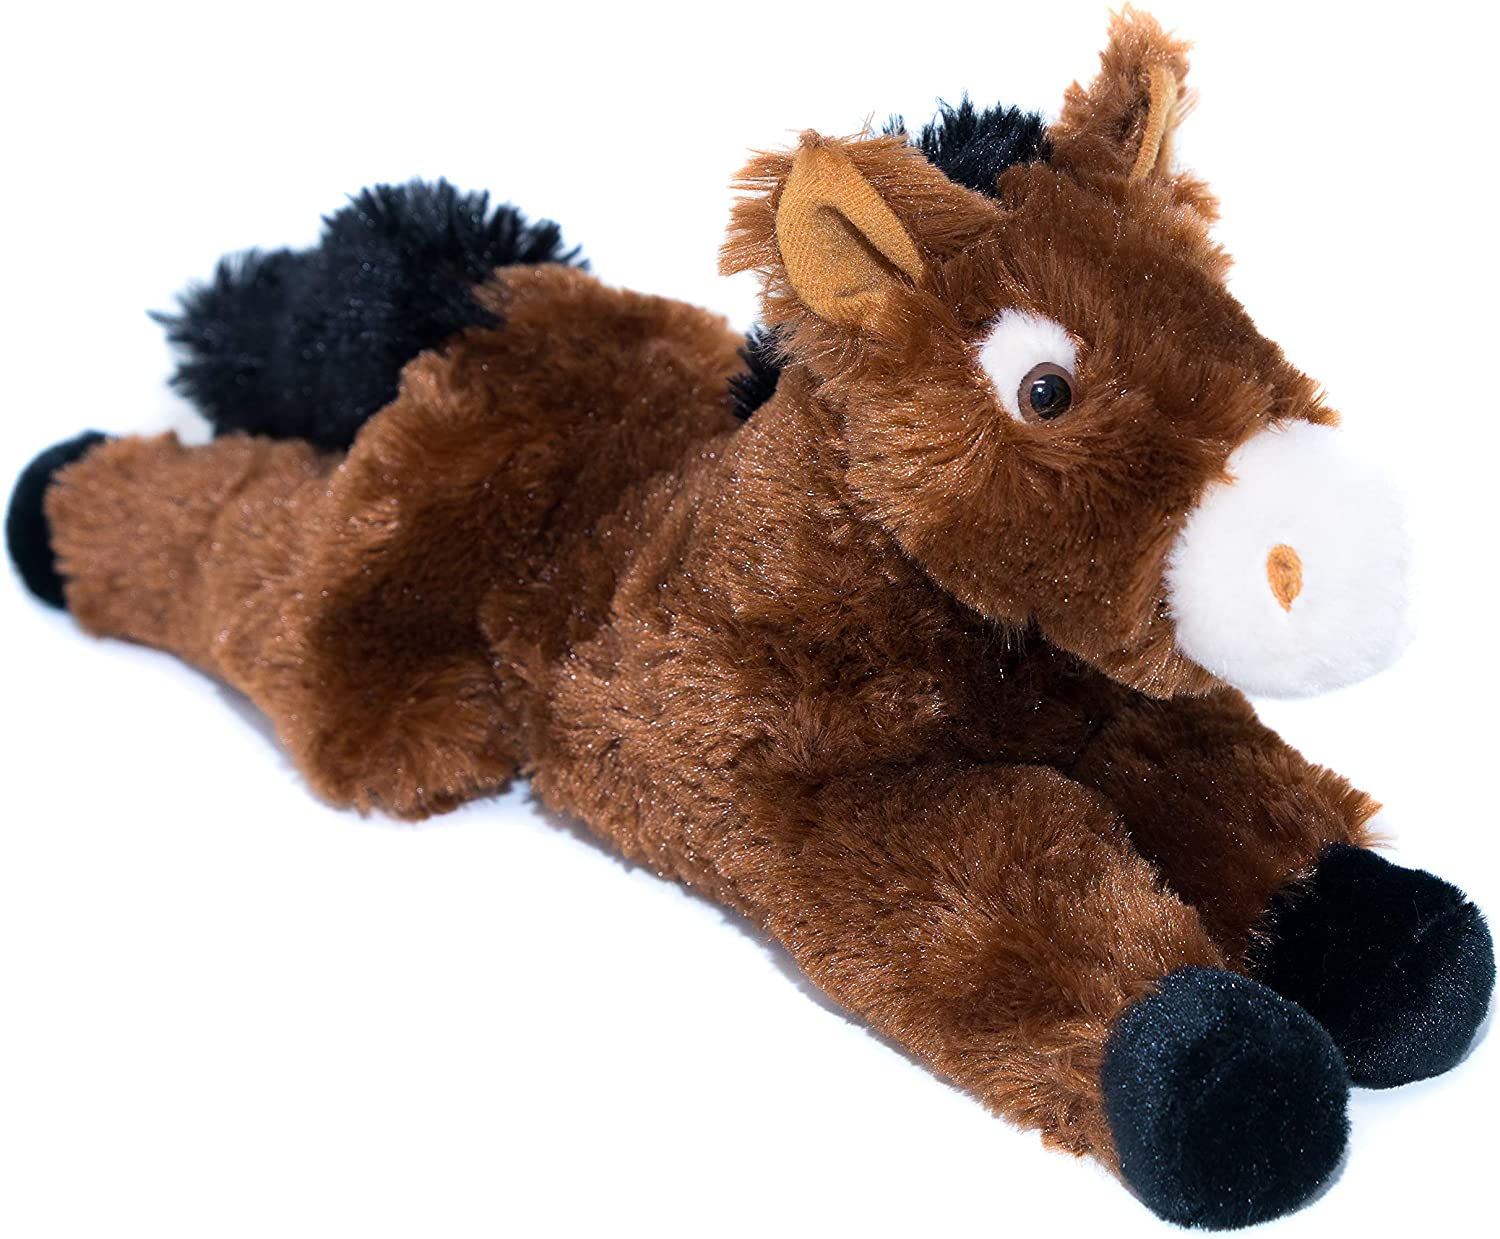 """14"""" Horse Stuffed Animal - Ultra Soft Stuffed Horse Designed with Superior Softness – Perfect Size Horse Plush - Easy to Carry & Snuggle - Realistic Cute Horse Toy - Bring A New Horse Home to Ages 3+"""